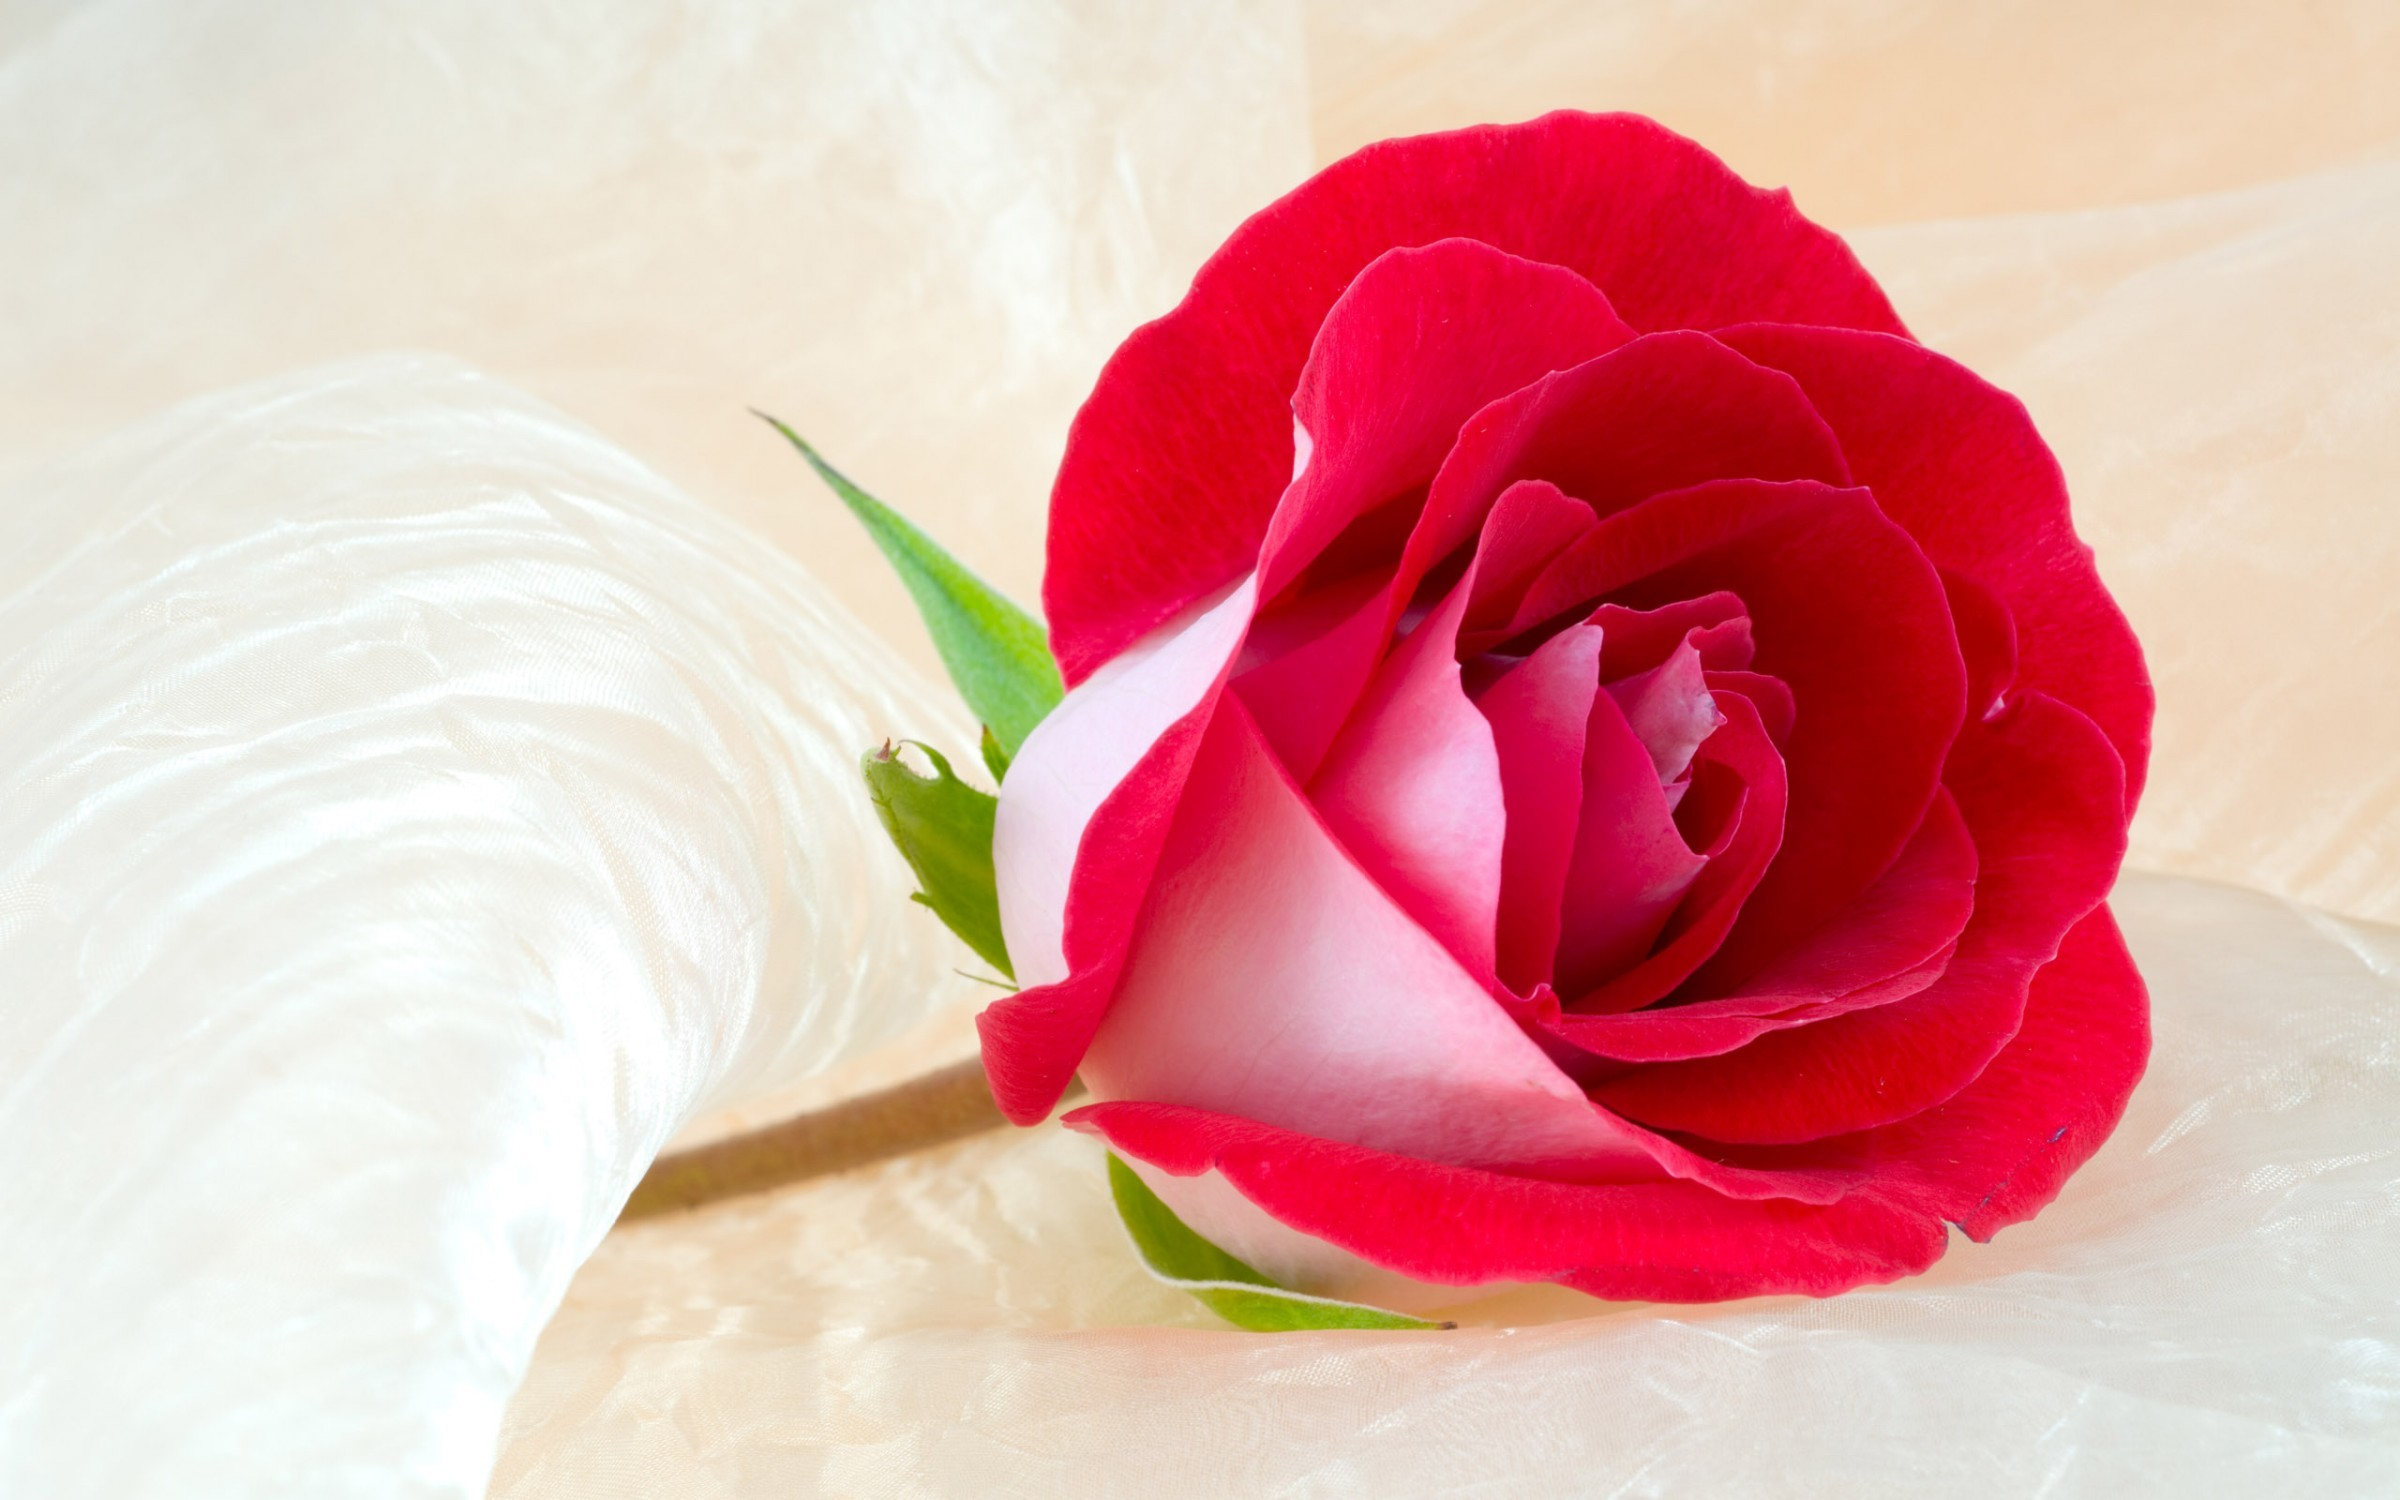 beautiful rose wallpapers hd (62+ images)